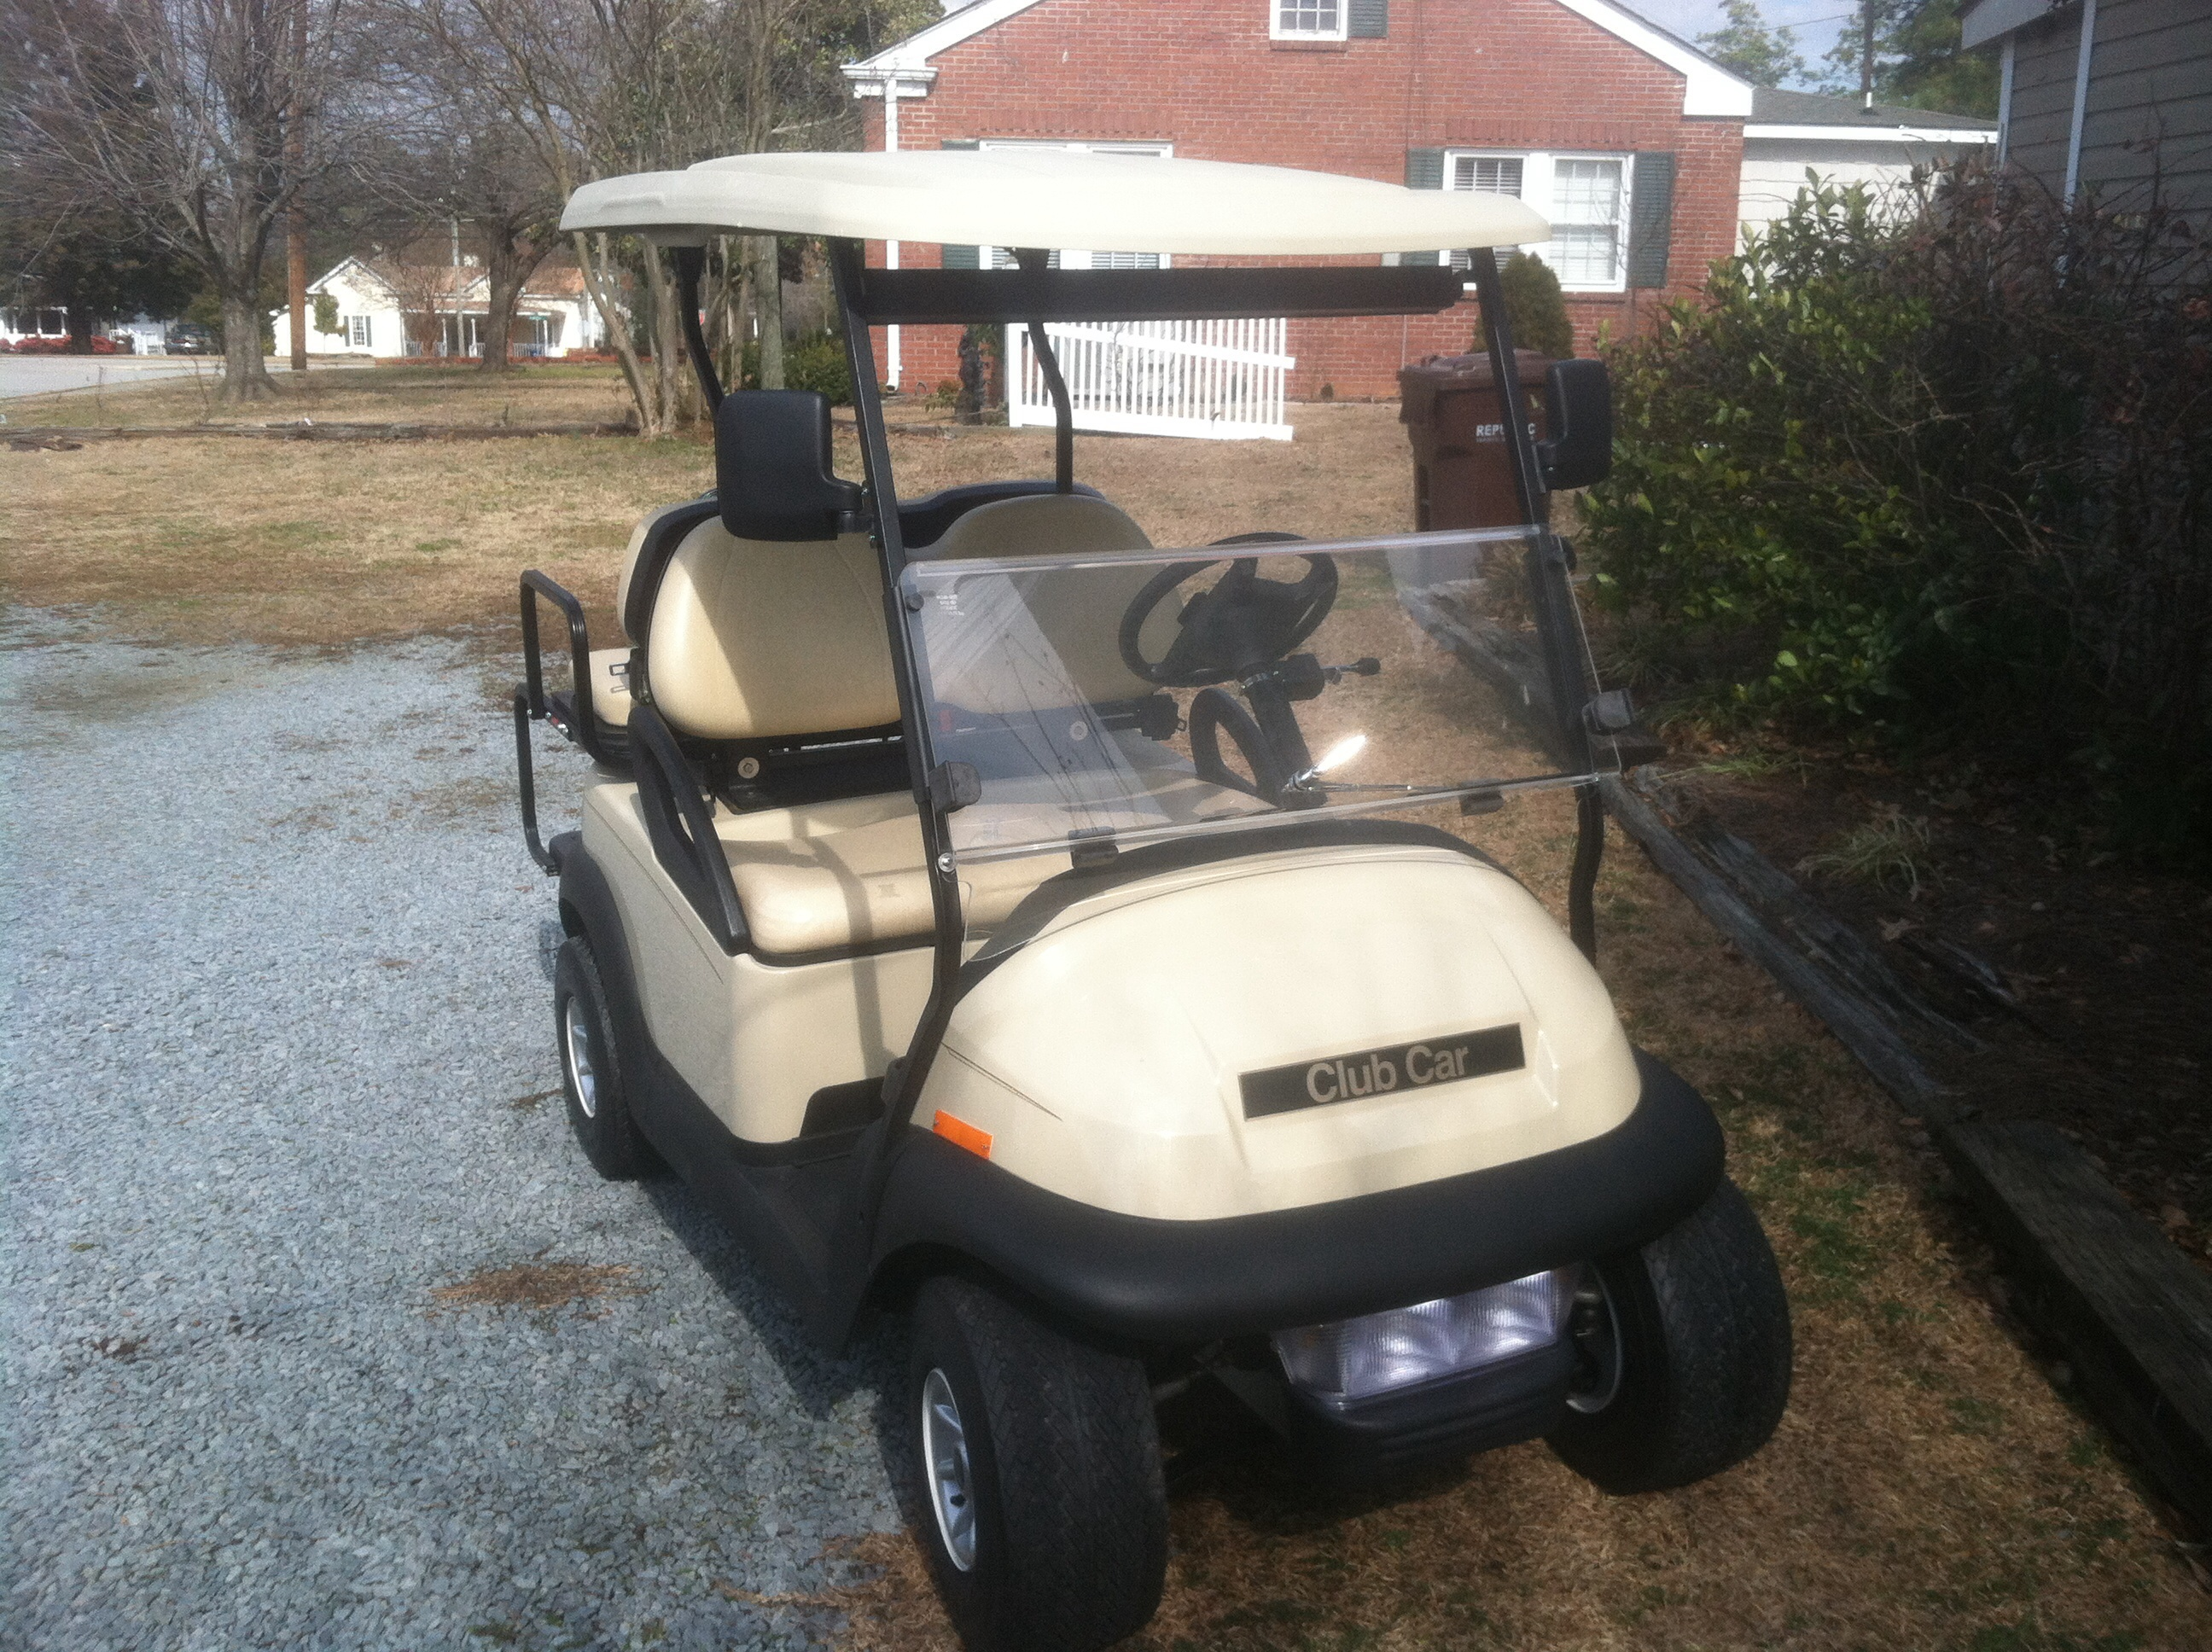 how to make a golf cart street legal in nc